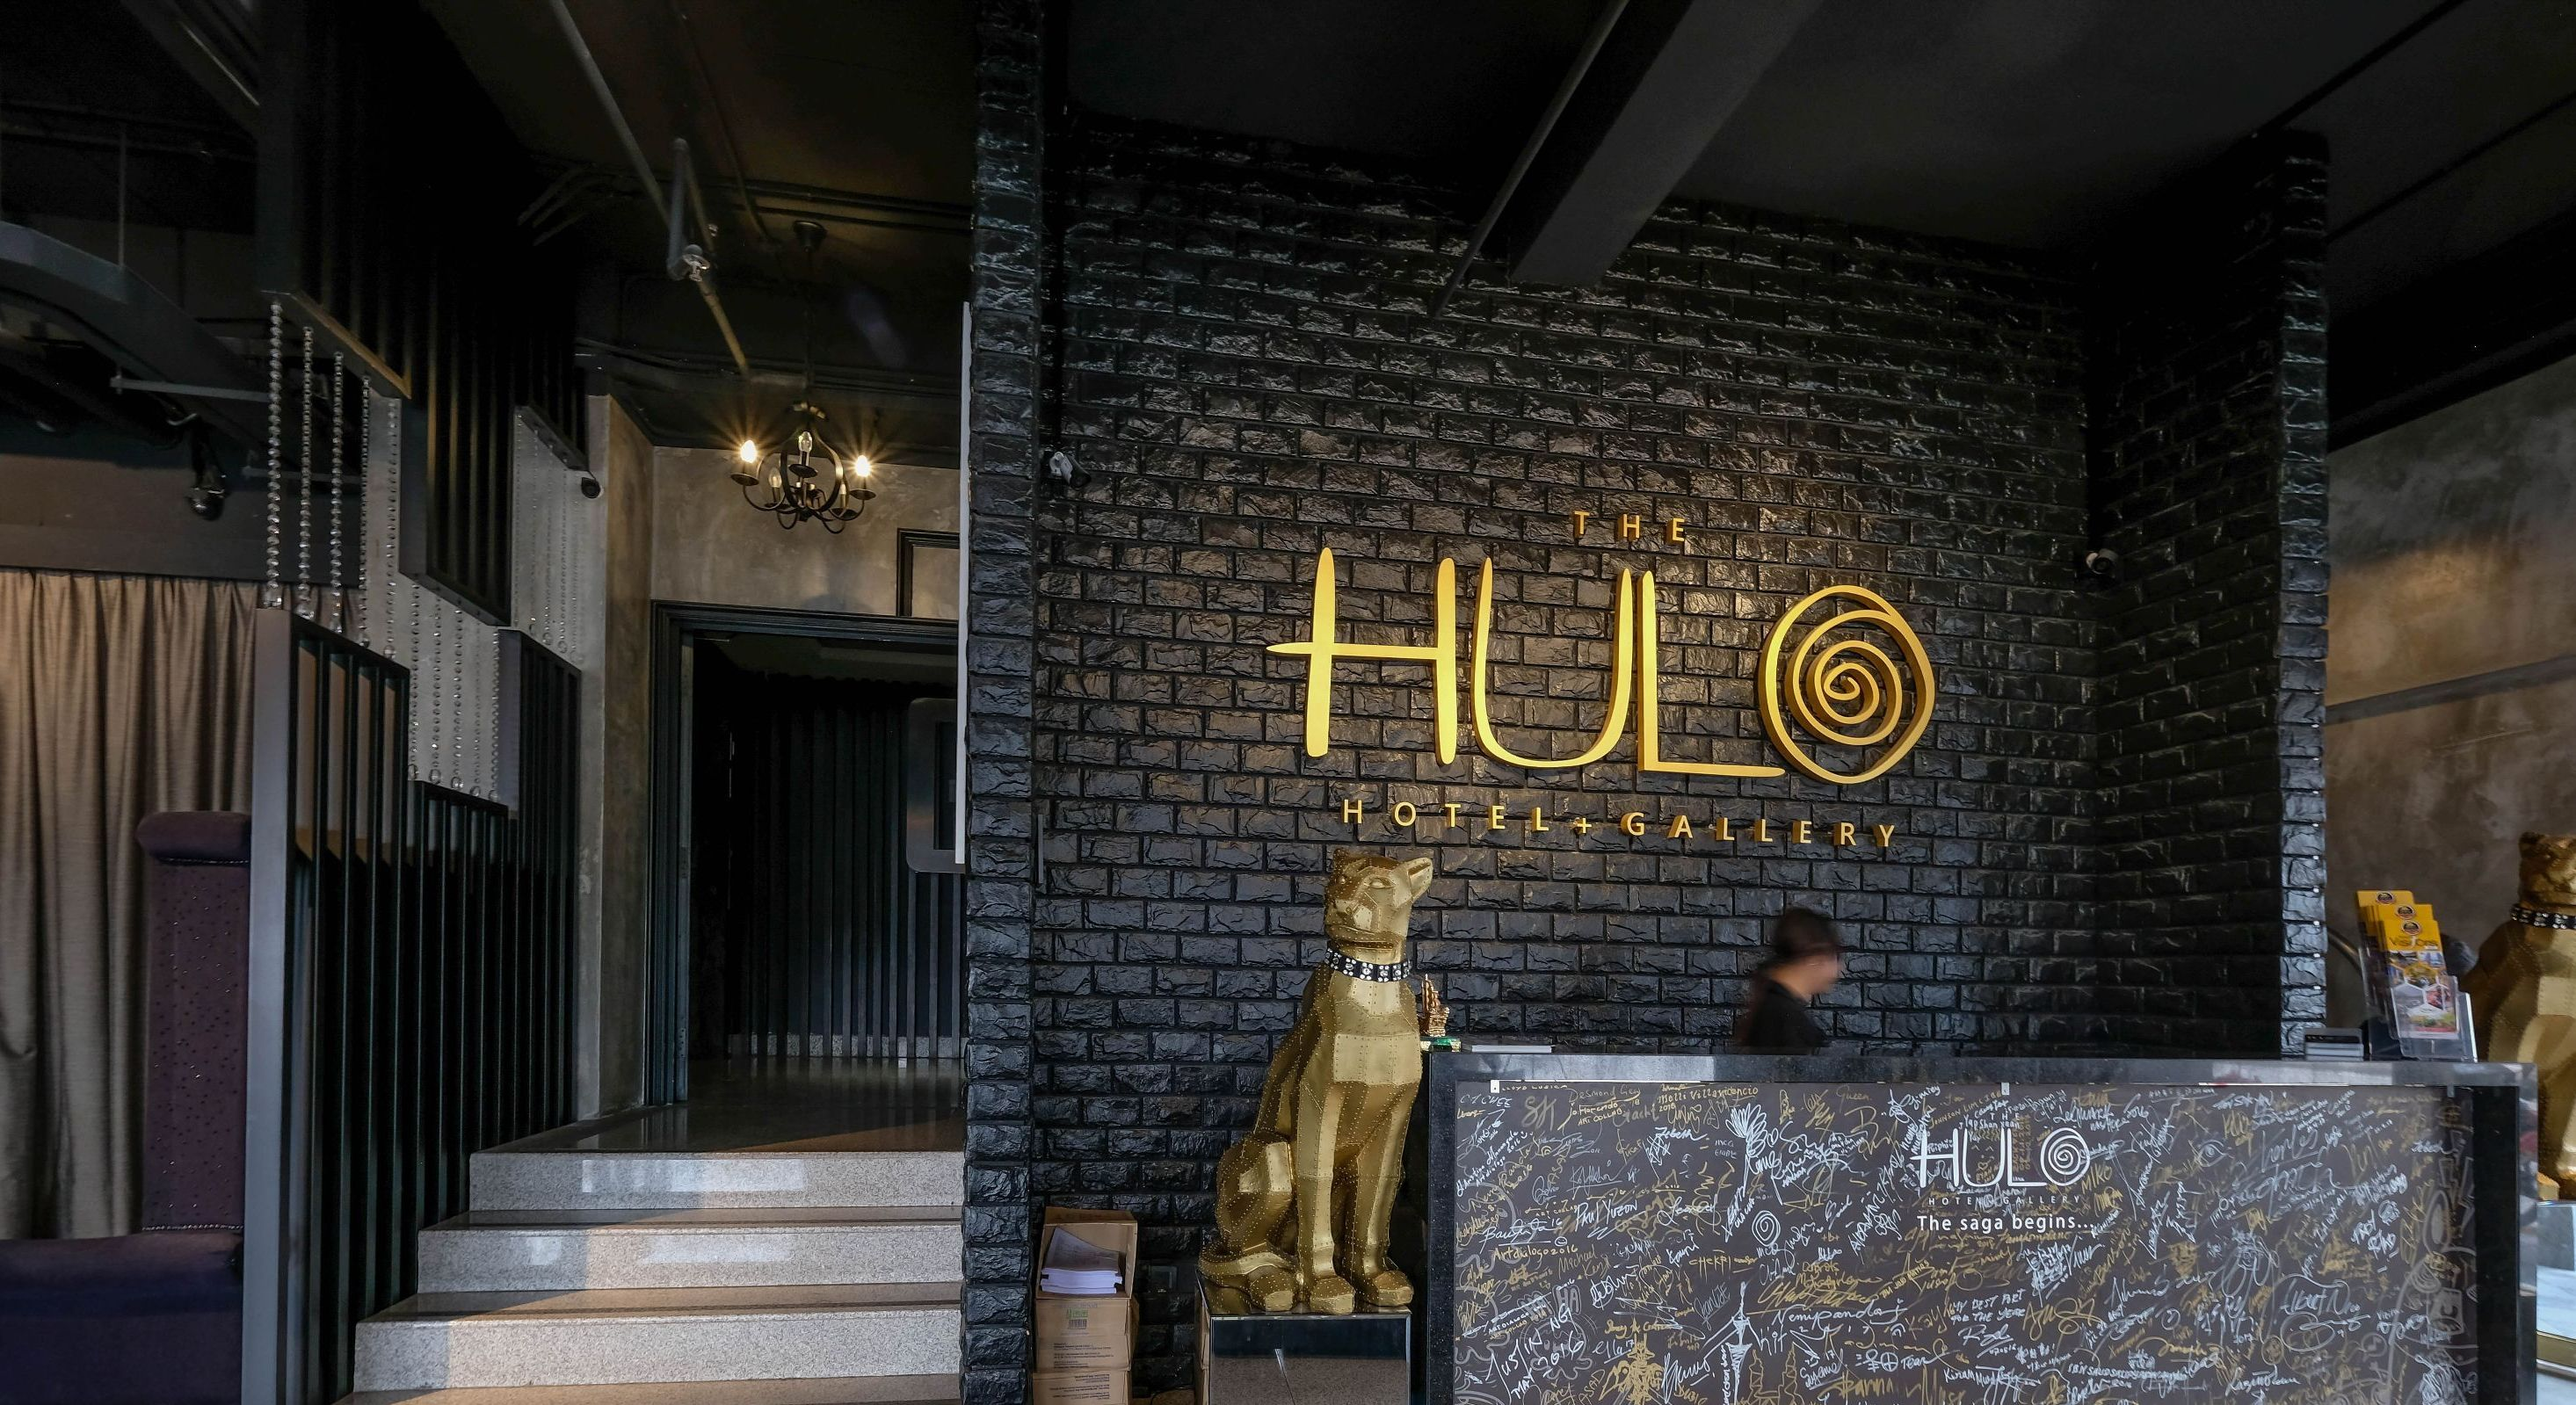 The Hulo Hotel & Gallery